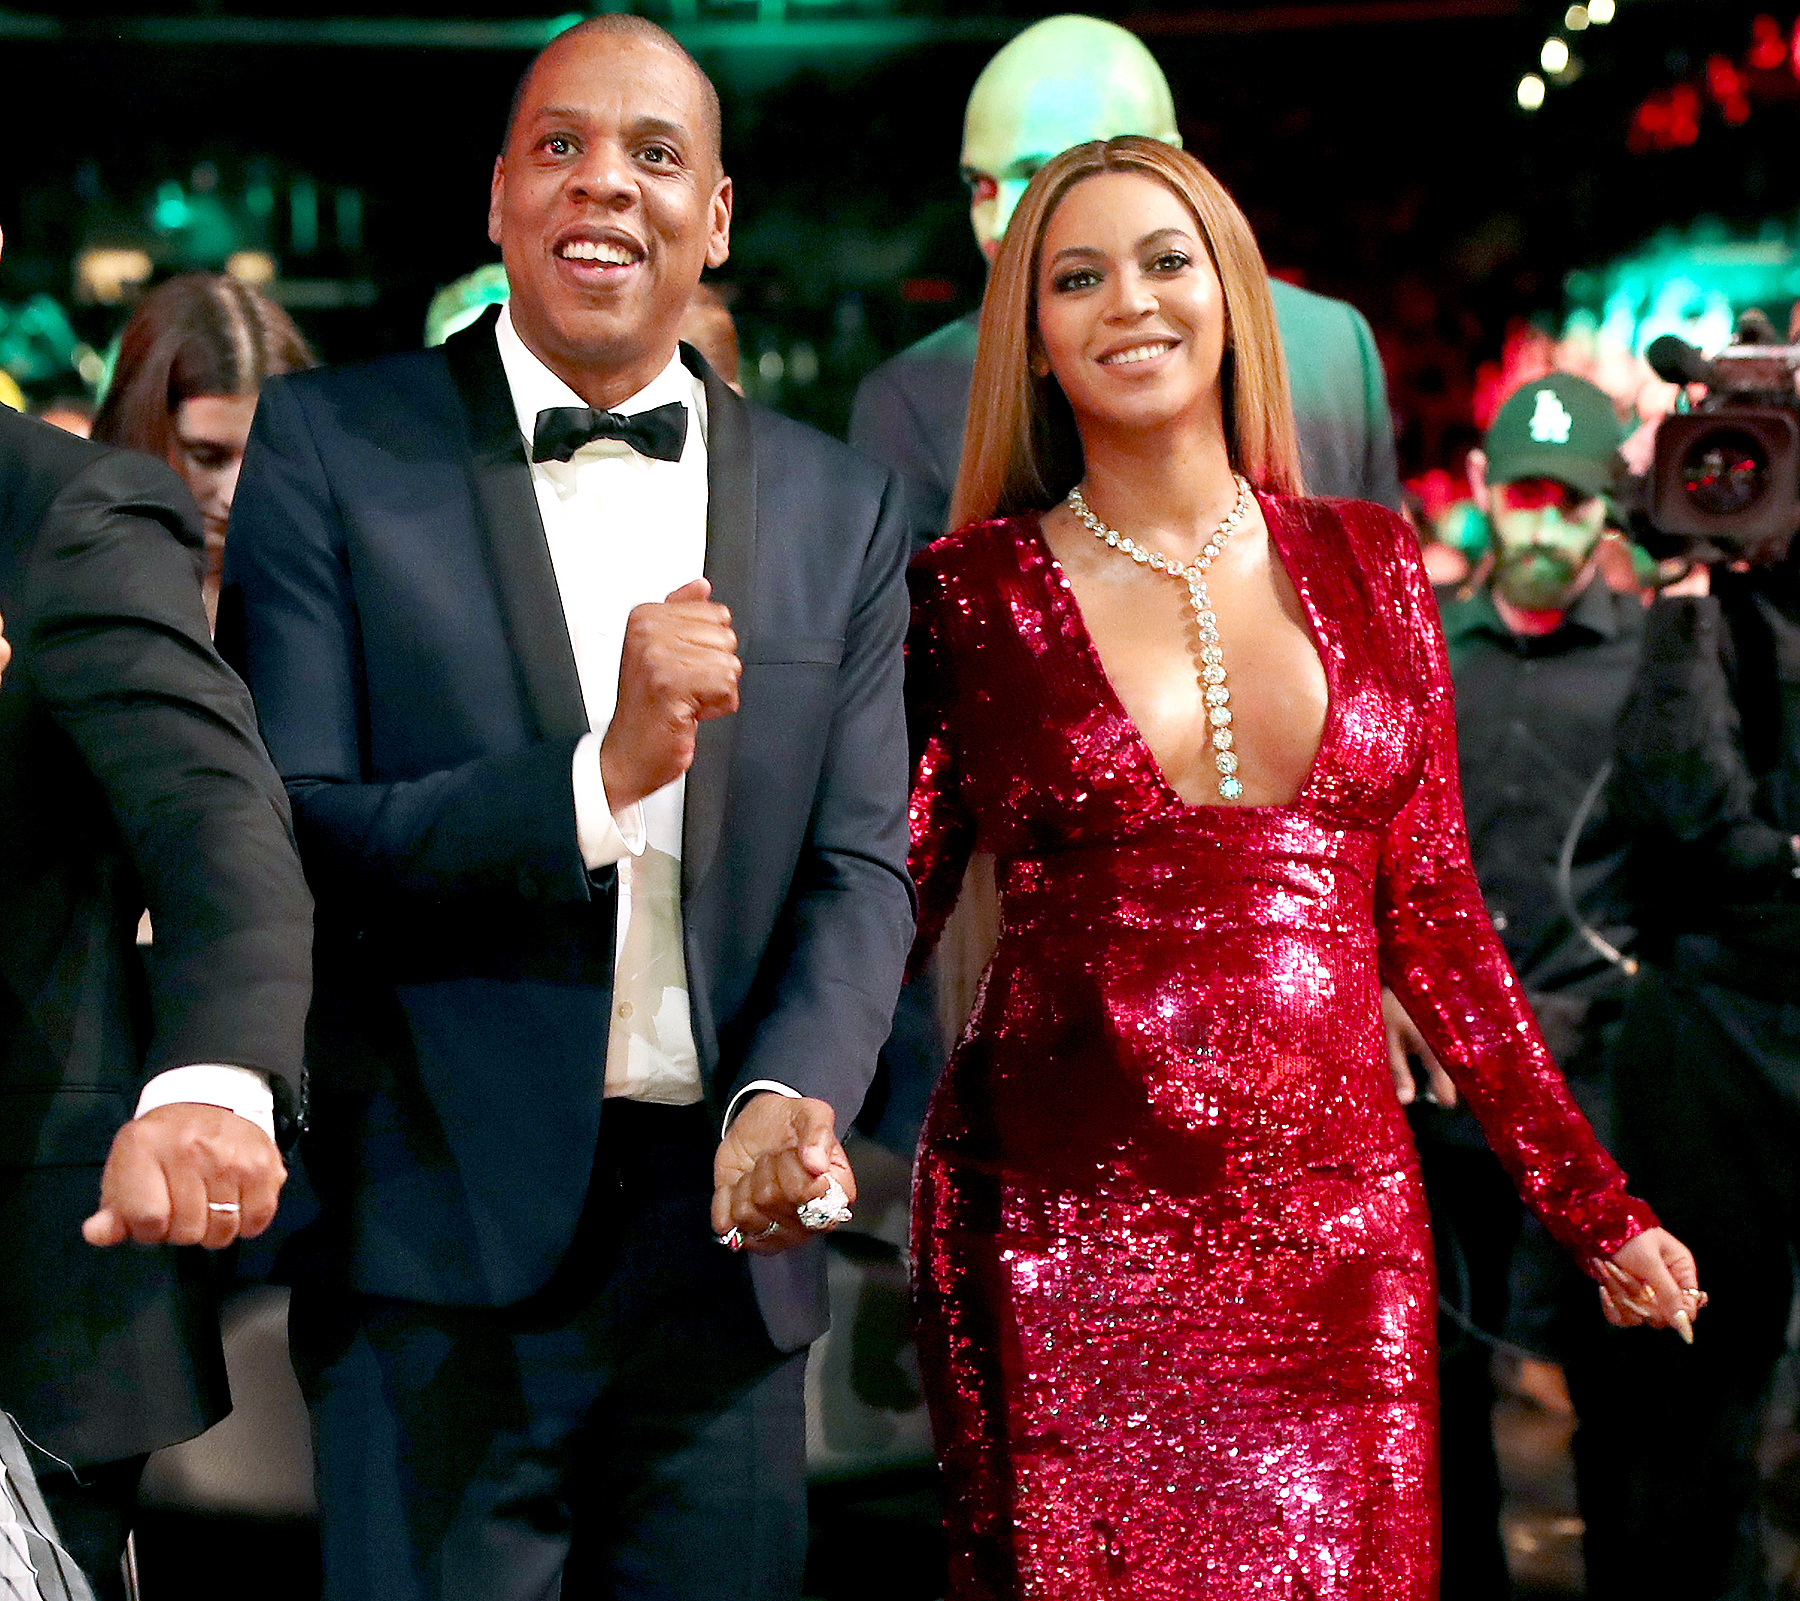 Jay Z and Beyoncé during The 59th GRAMMY Awards at STAPLES Center on February 12, 2017 in Los Angeles, California.